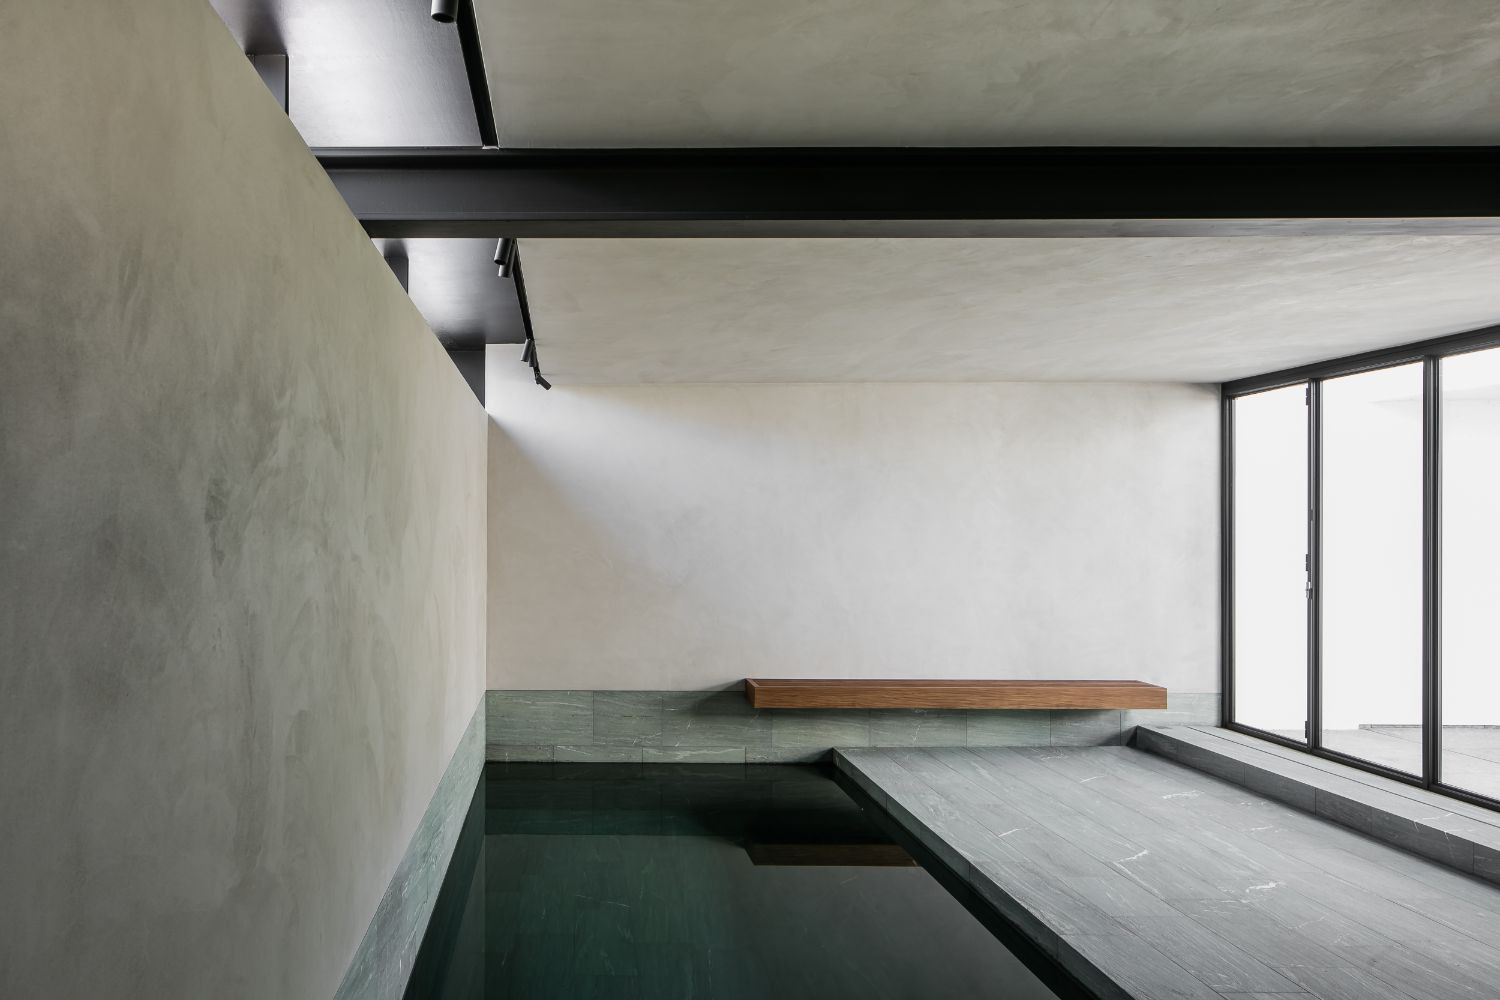 Rietveldprojects - House MP - Indoor swimminpool - Pic by Cafeïne 6.jpg